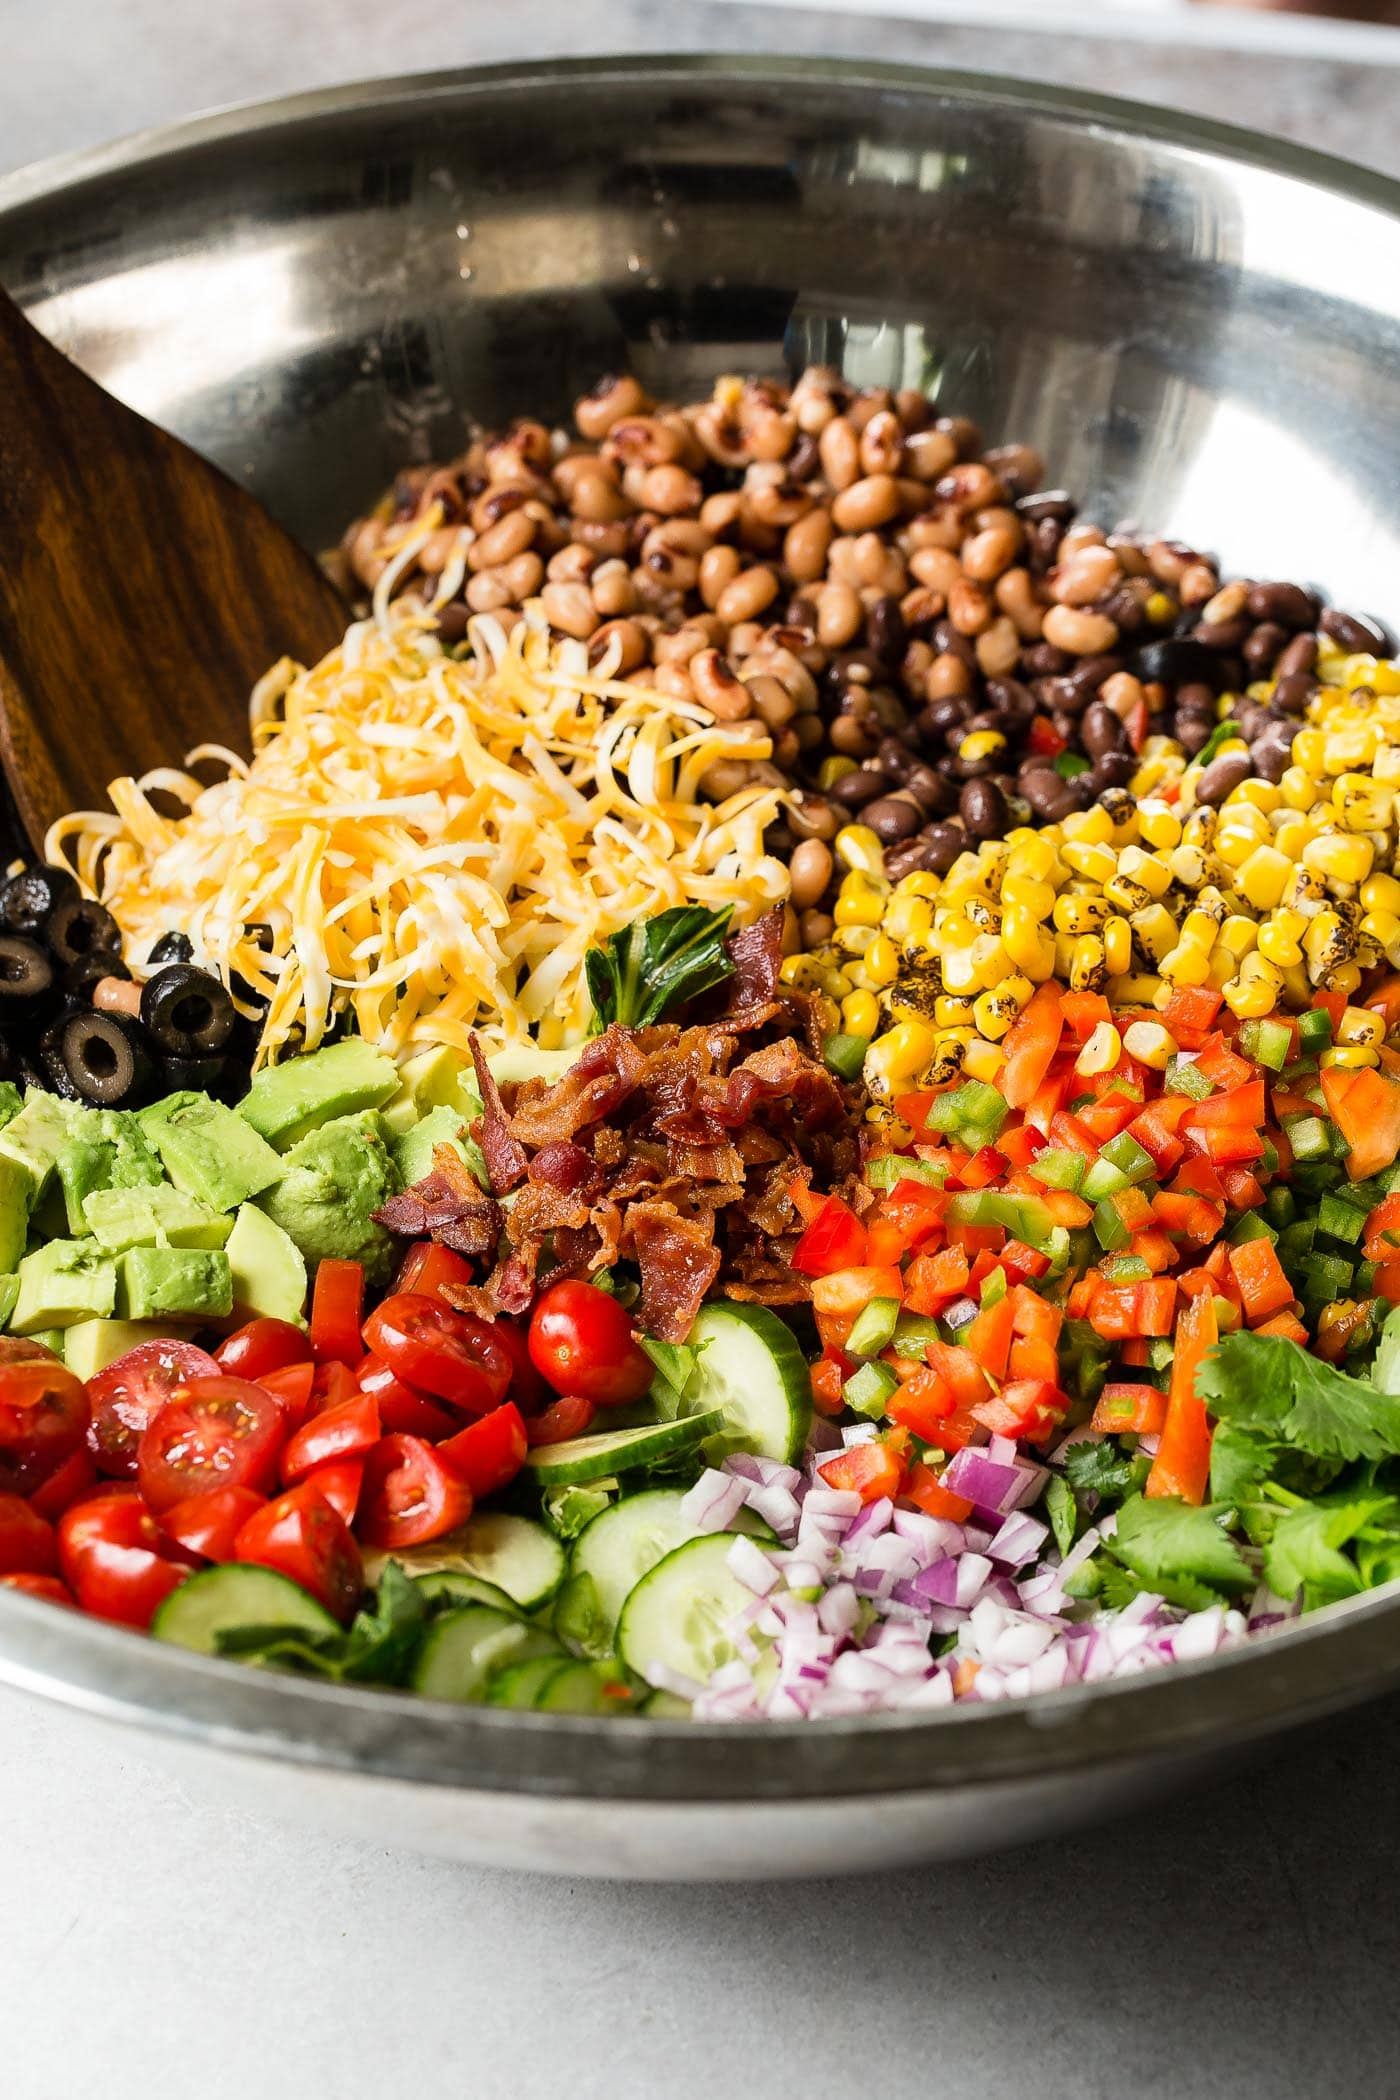 Sections of chopped tomatoes, avocados, red onion, corn, cilantro, beans, shredded cheese, olives, peppers, bacon, and peas in a glass bowl with a wooden spoon.